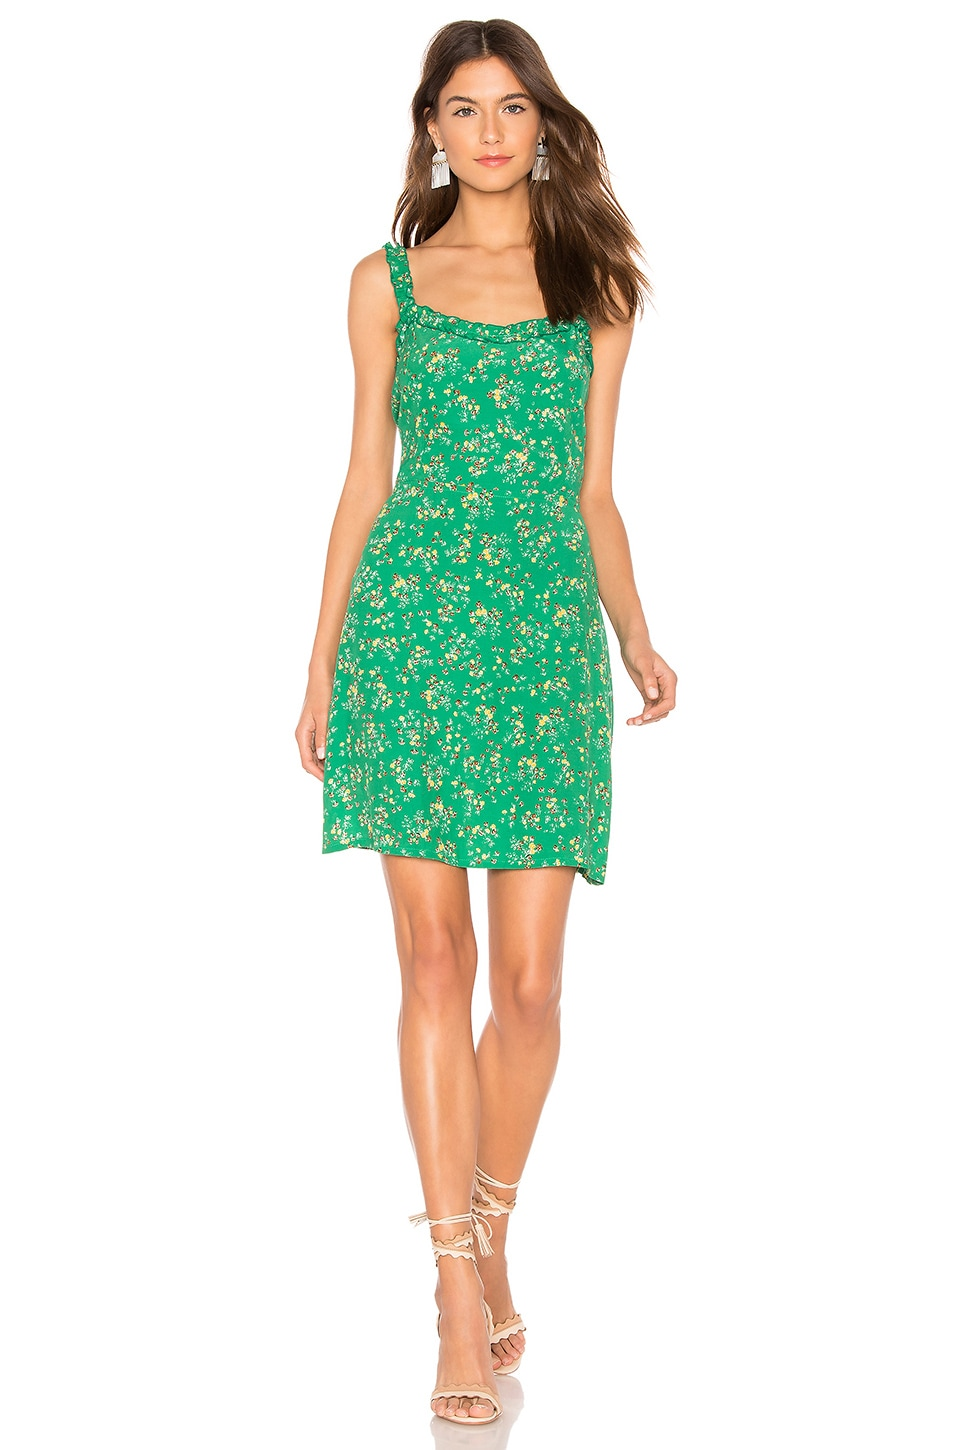 FAITHFULL THE BRAND Esther Dress in Audrey Floral